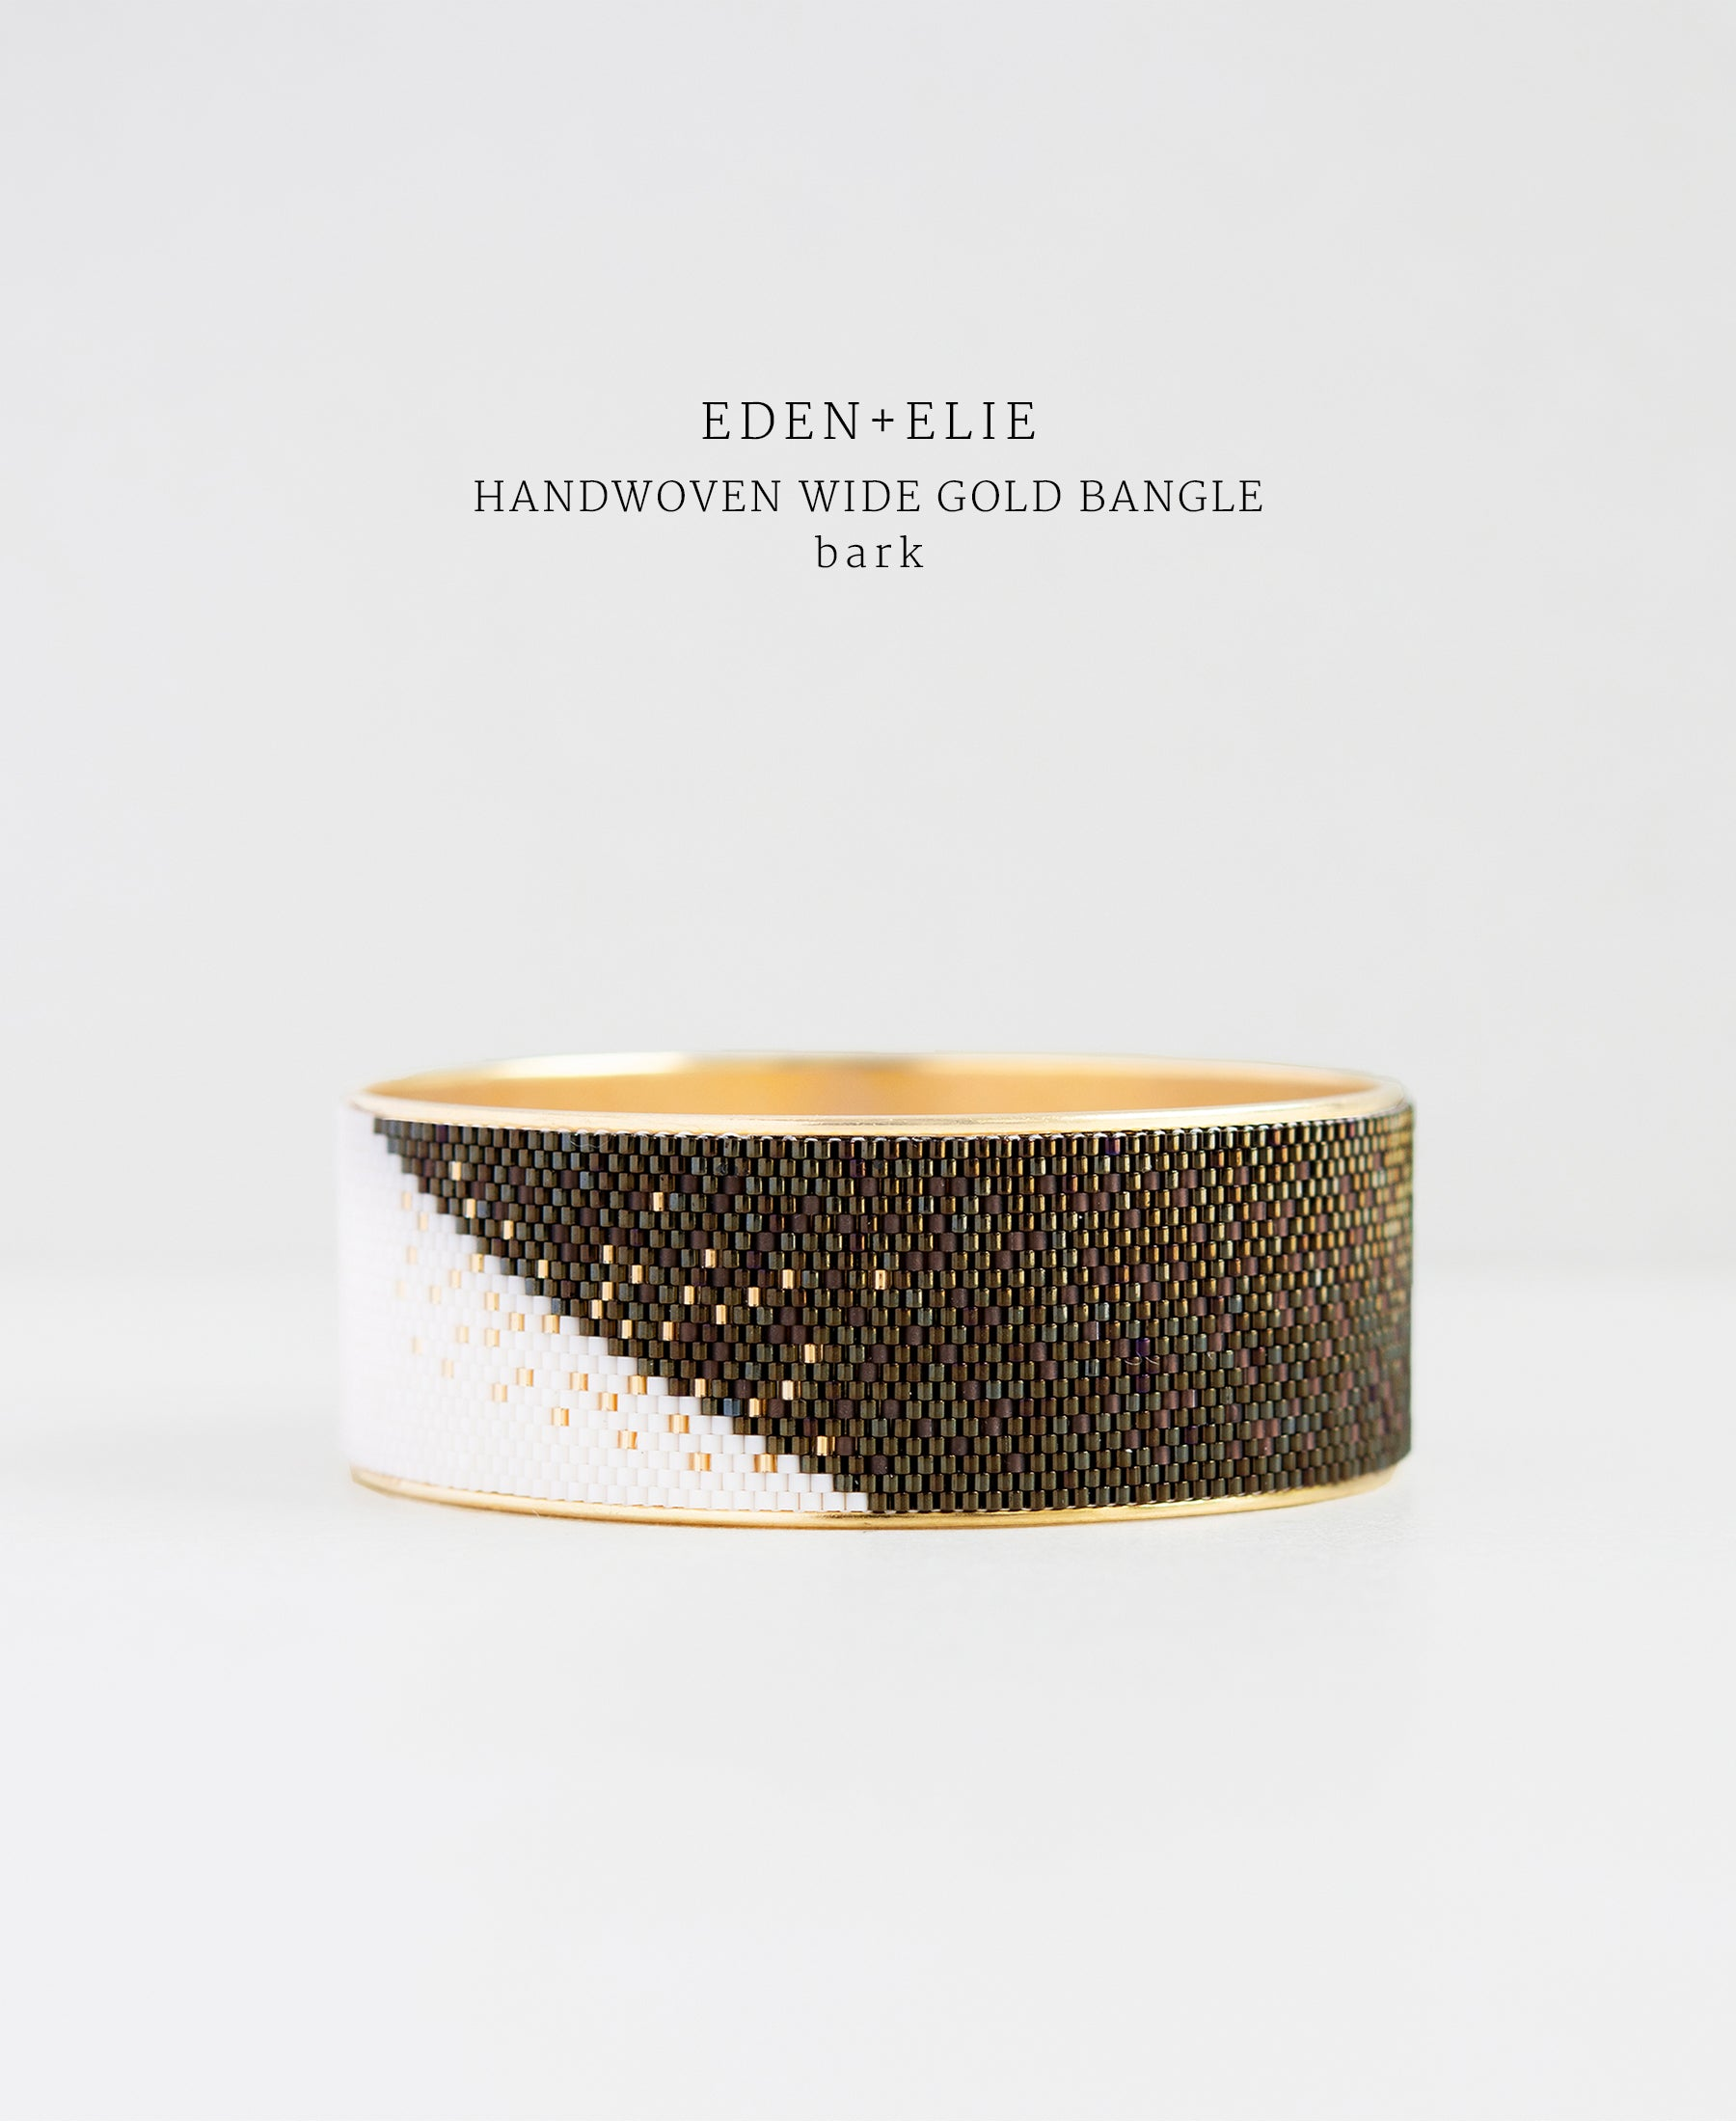 EDEN + ELIE gold plated jewelry Everyday wide gold bangle - bark brown